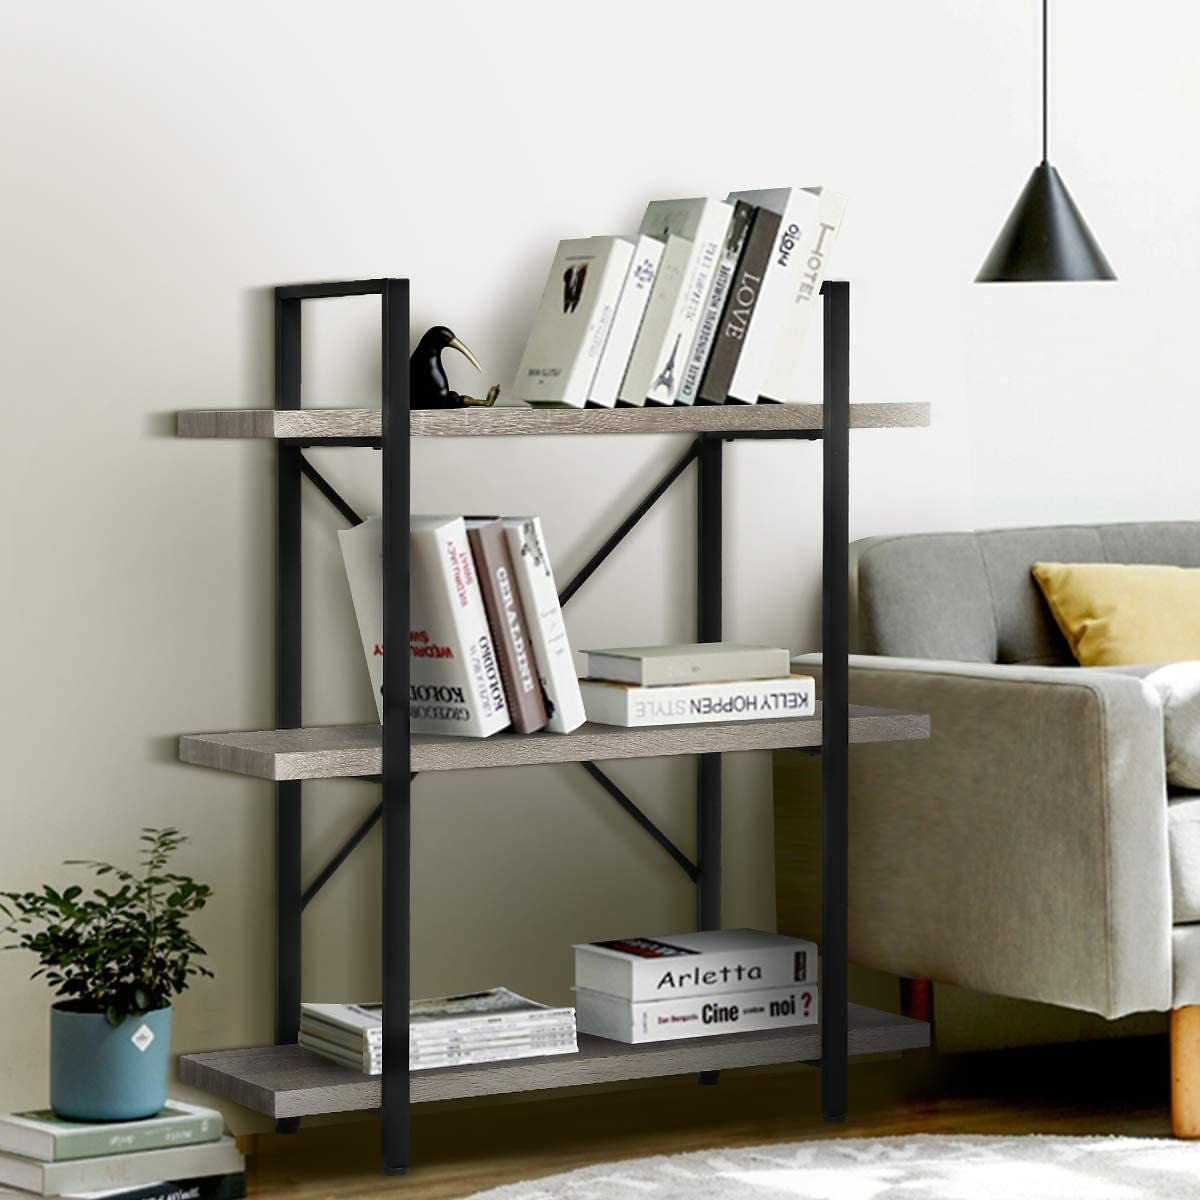 Save 17% | 3-Tier Industrial Bookshelf, Rustic Wood Etagere Book Shelves with Metal Frame